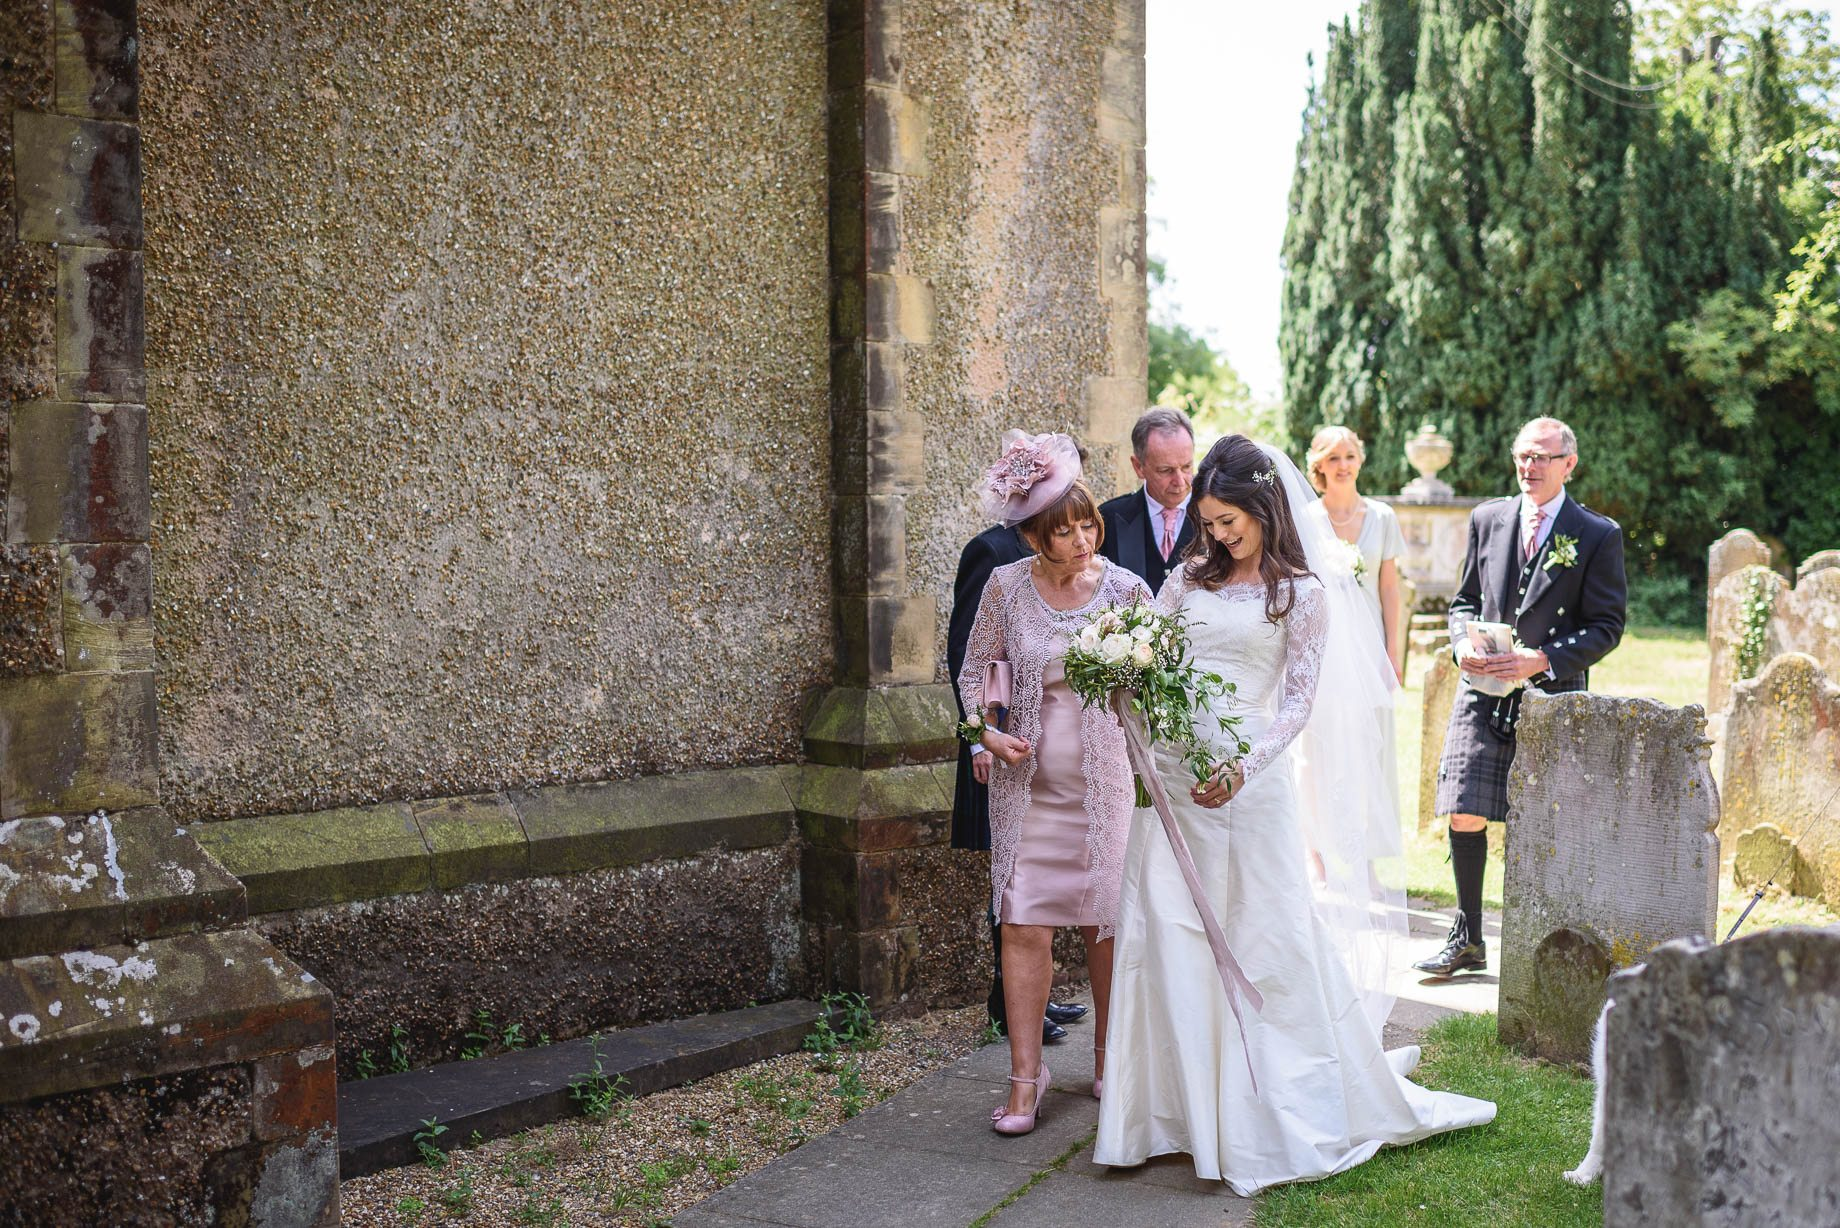 Gildings Barn wedding photography - Sarah and Steve (62 of 190)